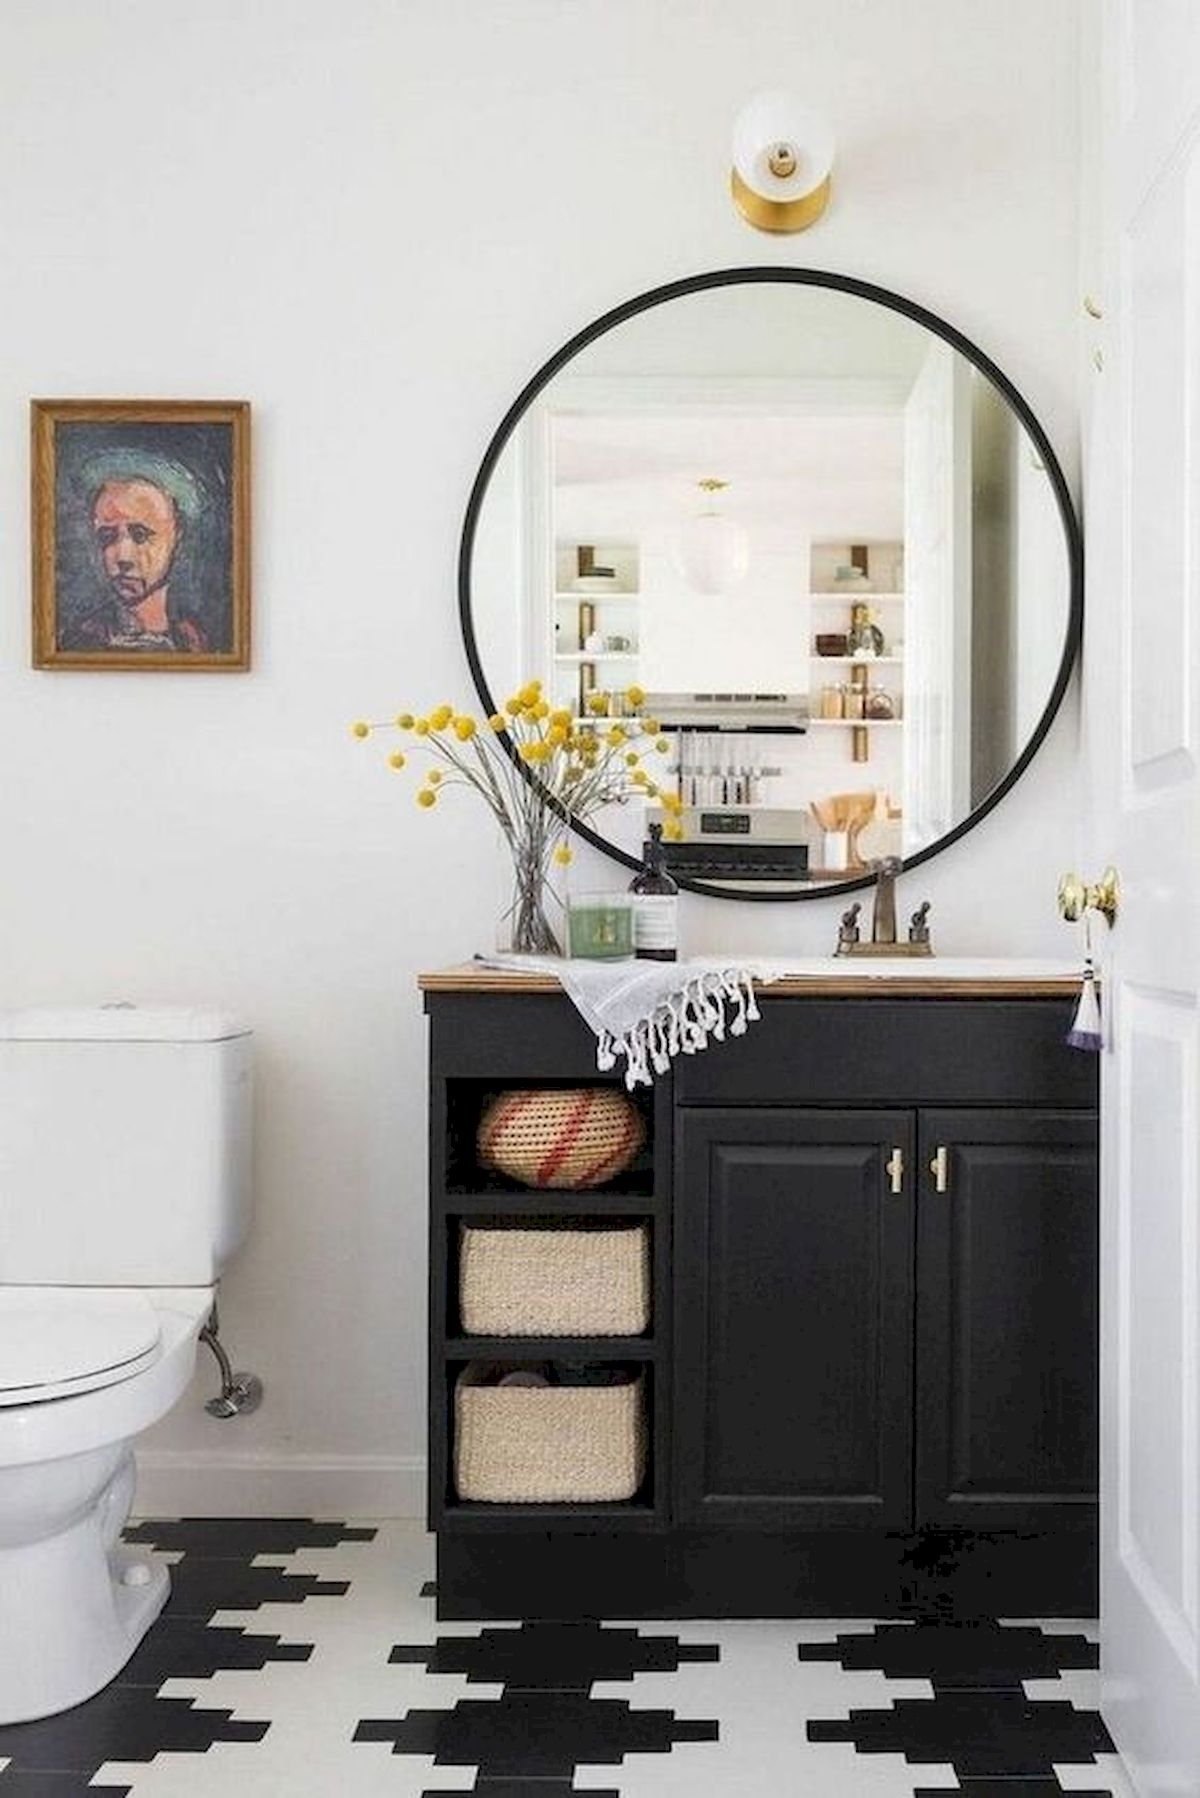 50 Best DIY Storage Design Ideas To Maximize Your Small Bathroom Space (21)